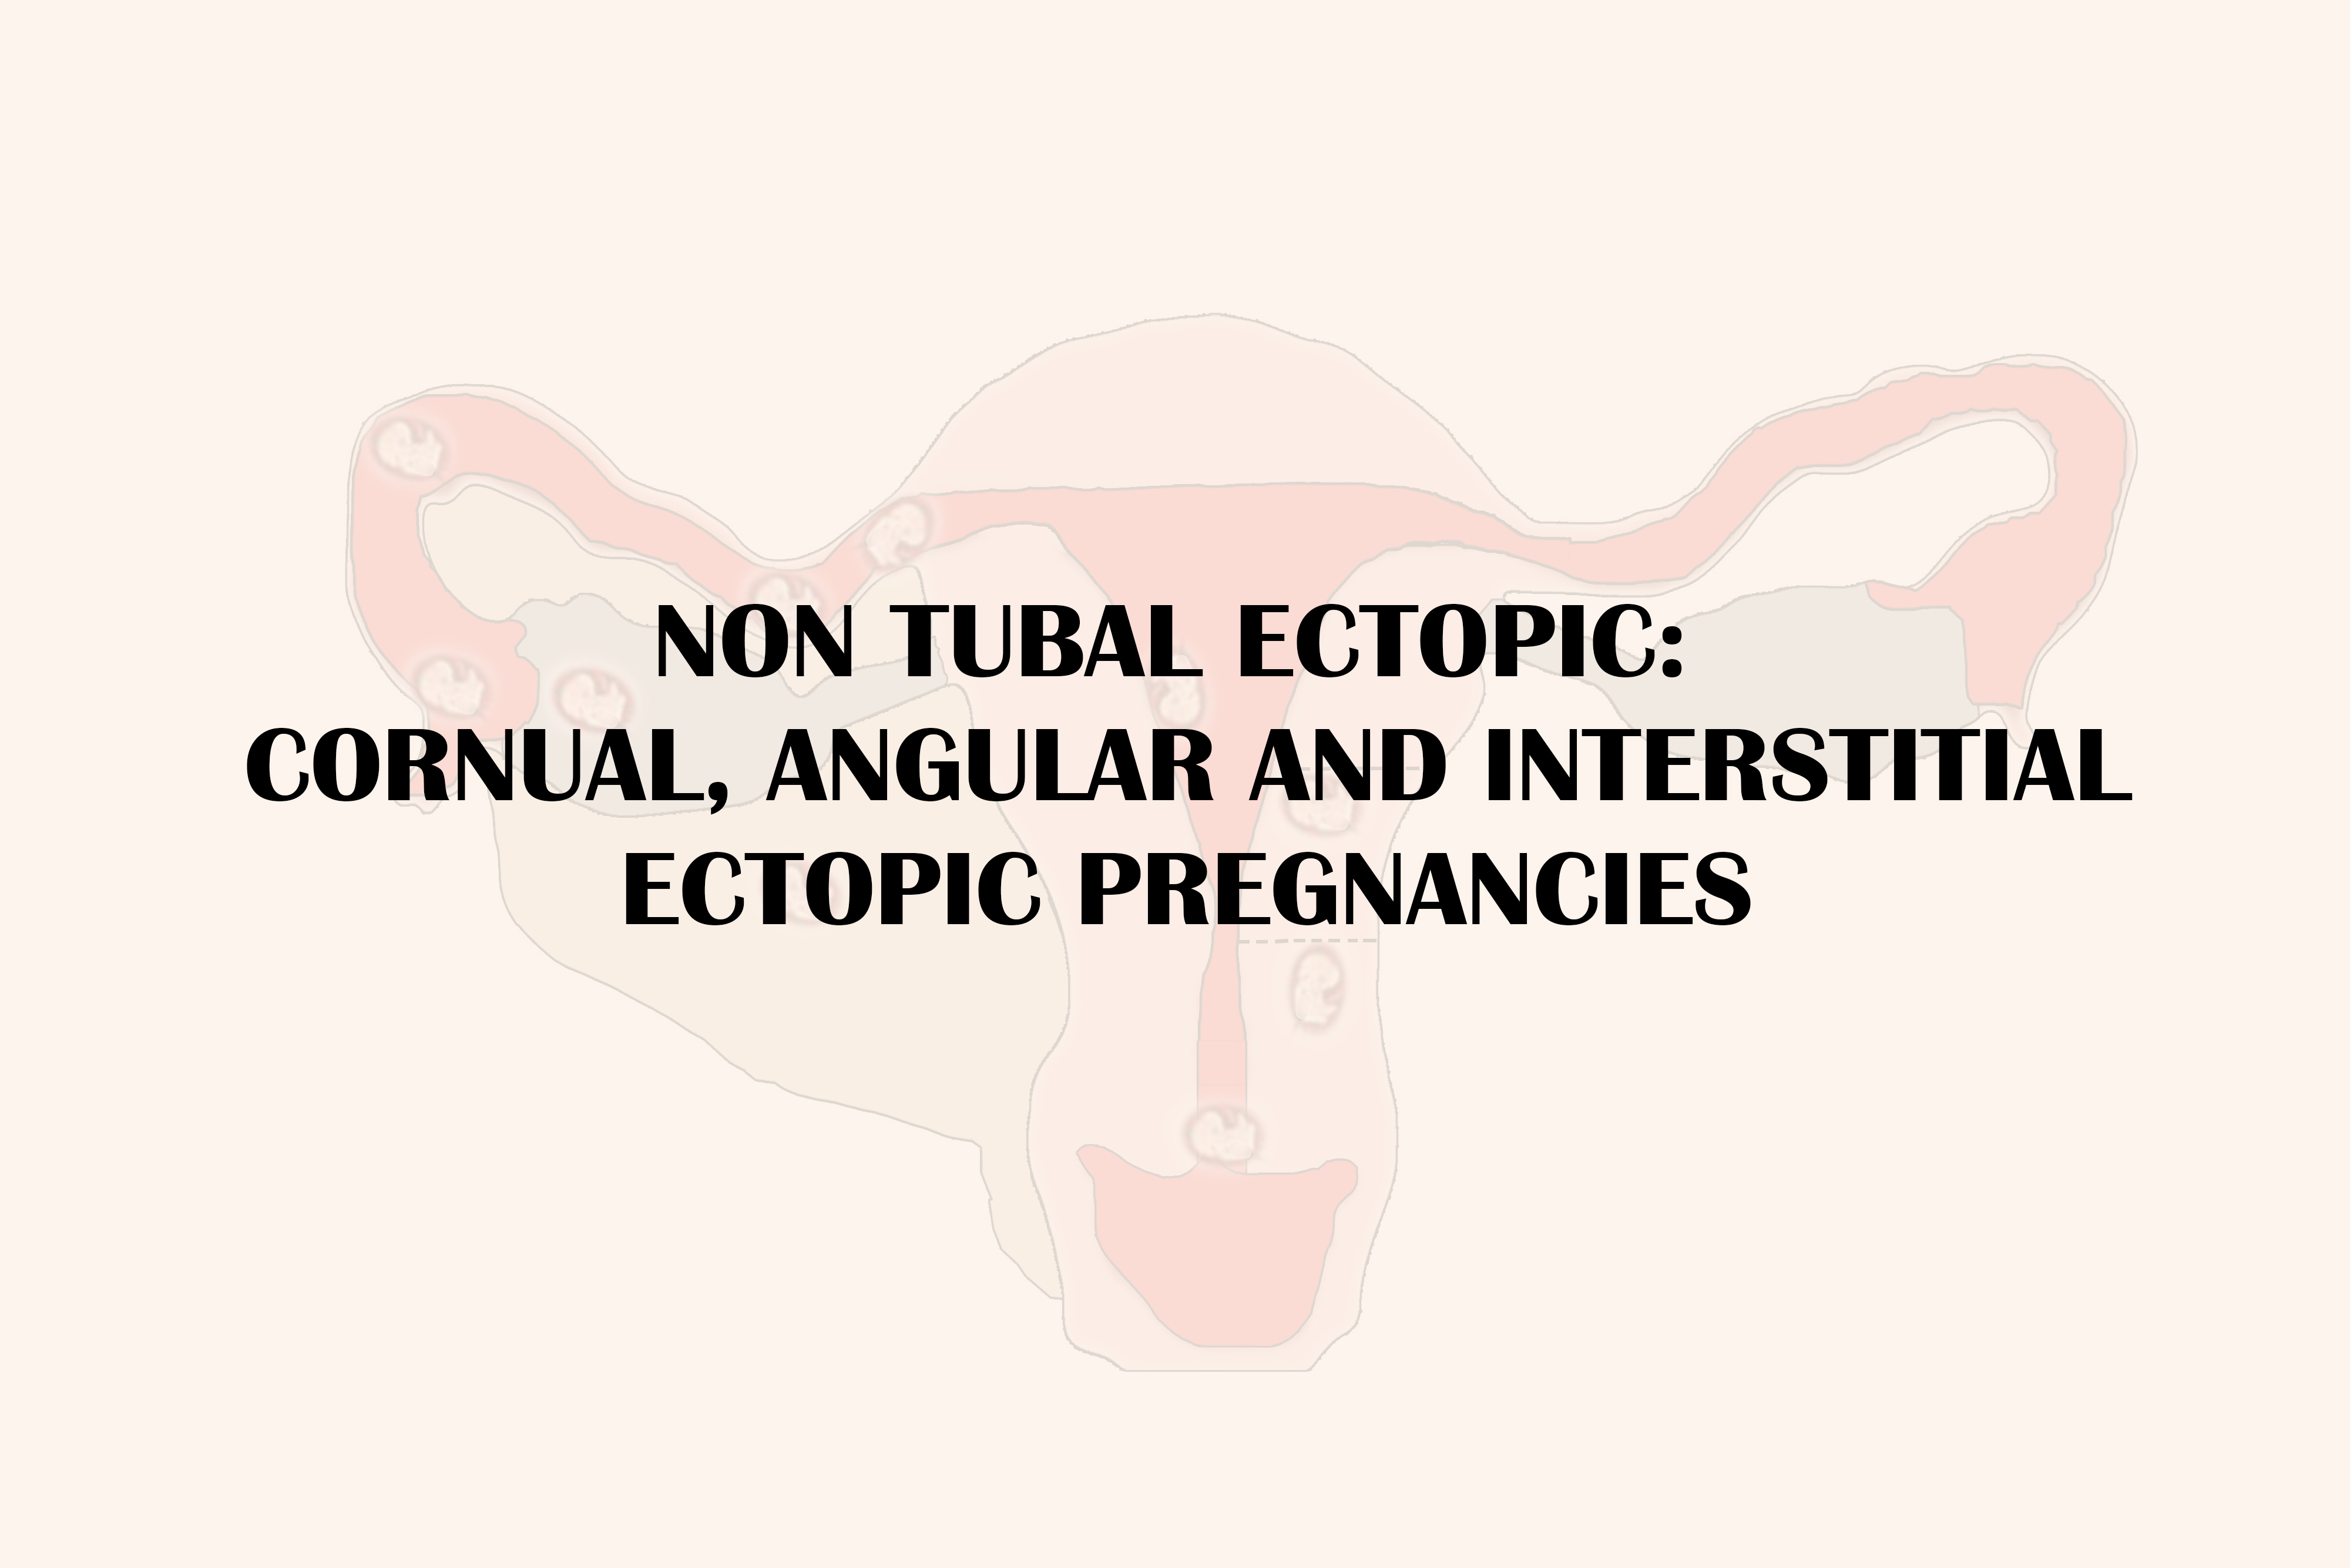 NON TUBAL ECTOPIC PREGNANCY: CORNUAL, ANGULAR AND INTERSTITIAL ECTOPIC PREGNANCIES